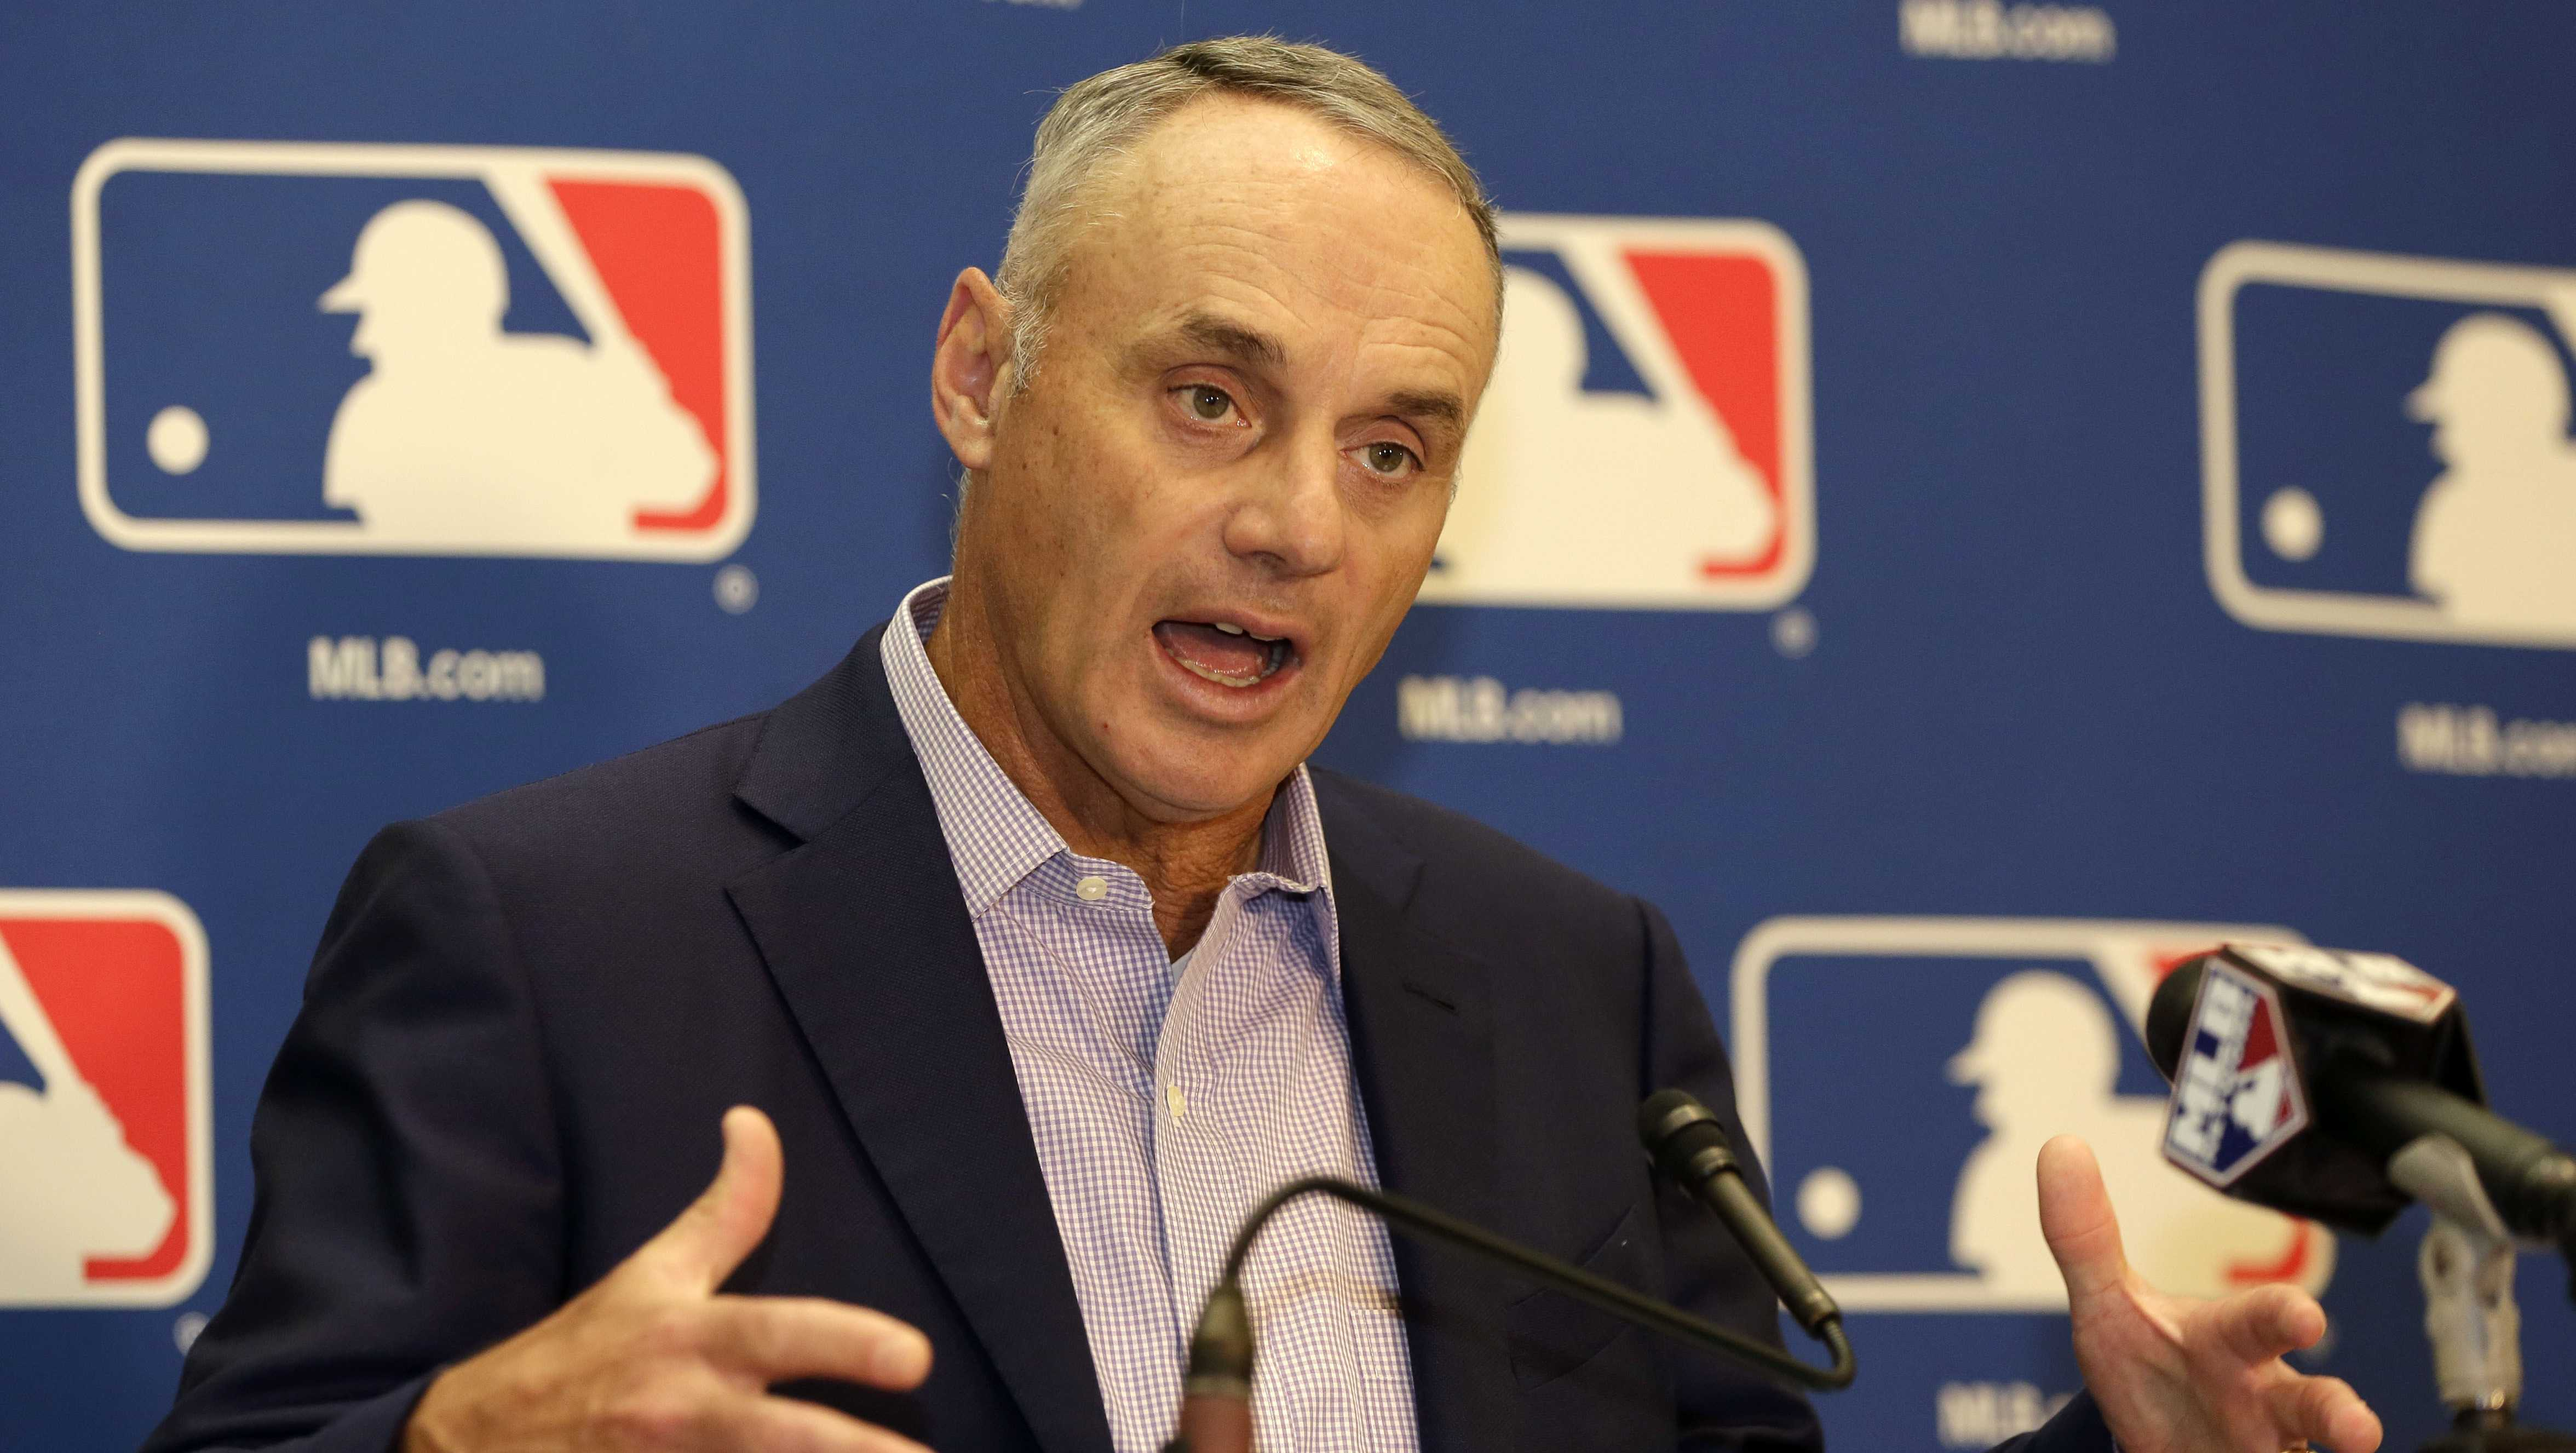 Major League Baseball Commissioner Rob Manfred speaks during a news conference following a meeting with MLB owners, Friday, Feb. 3, 2017, in Palm Beach, Fla.